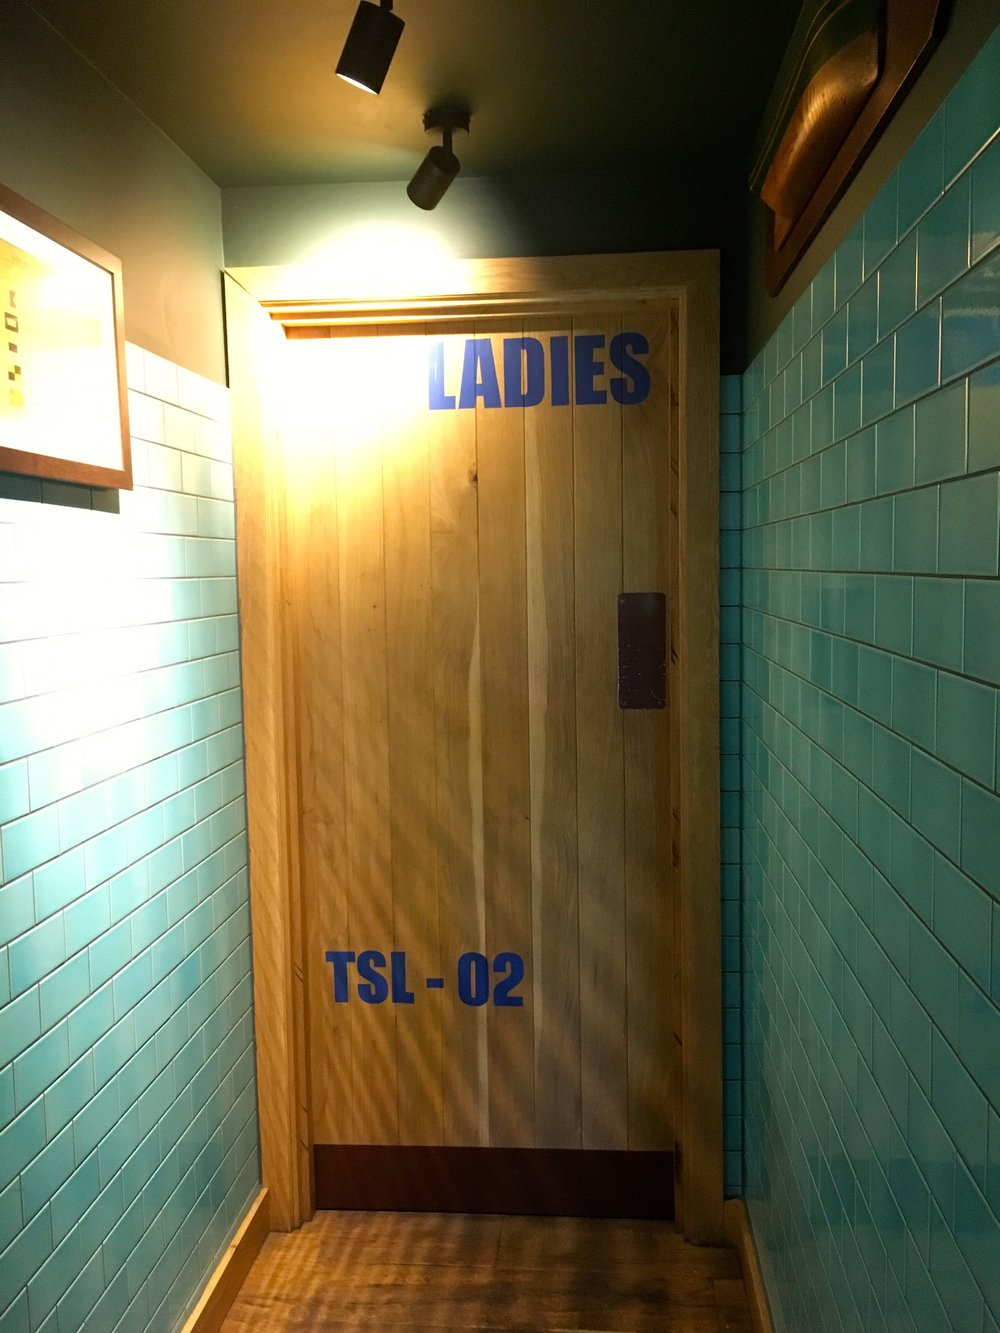 The door to the Ladies in the Sail Loft at Greenwich hinted at something special